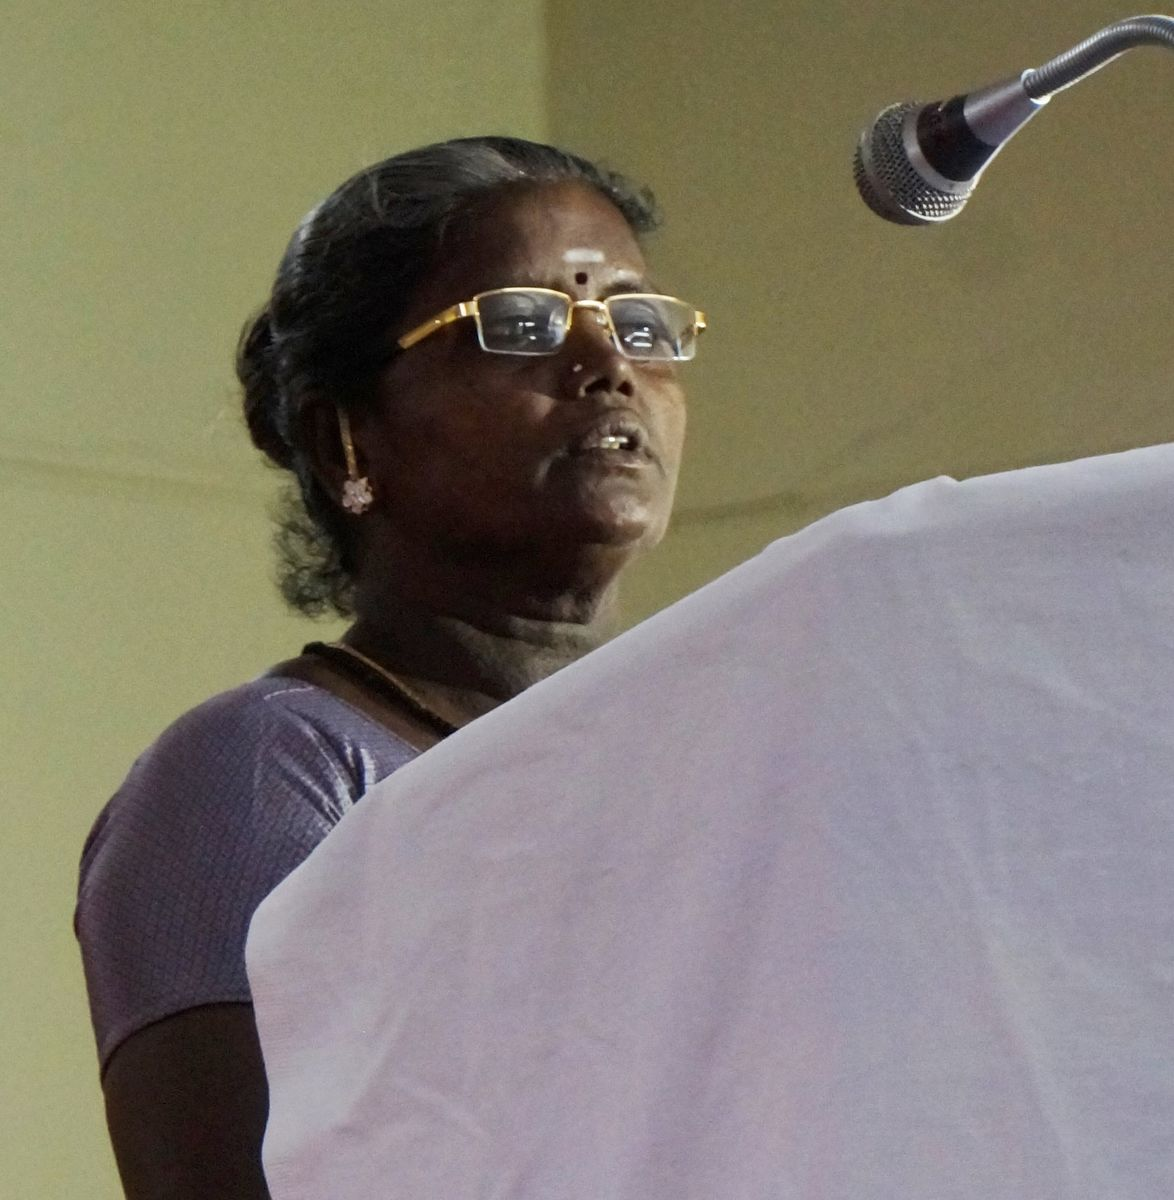 Muthulakshmi tells her story of moving out of povery